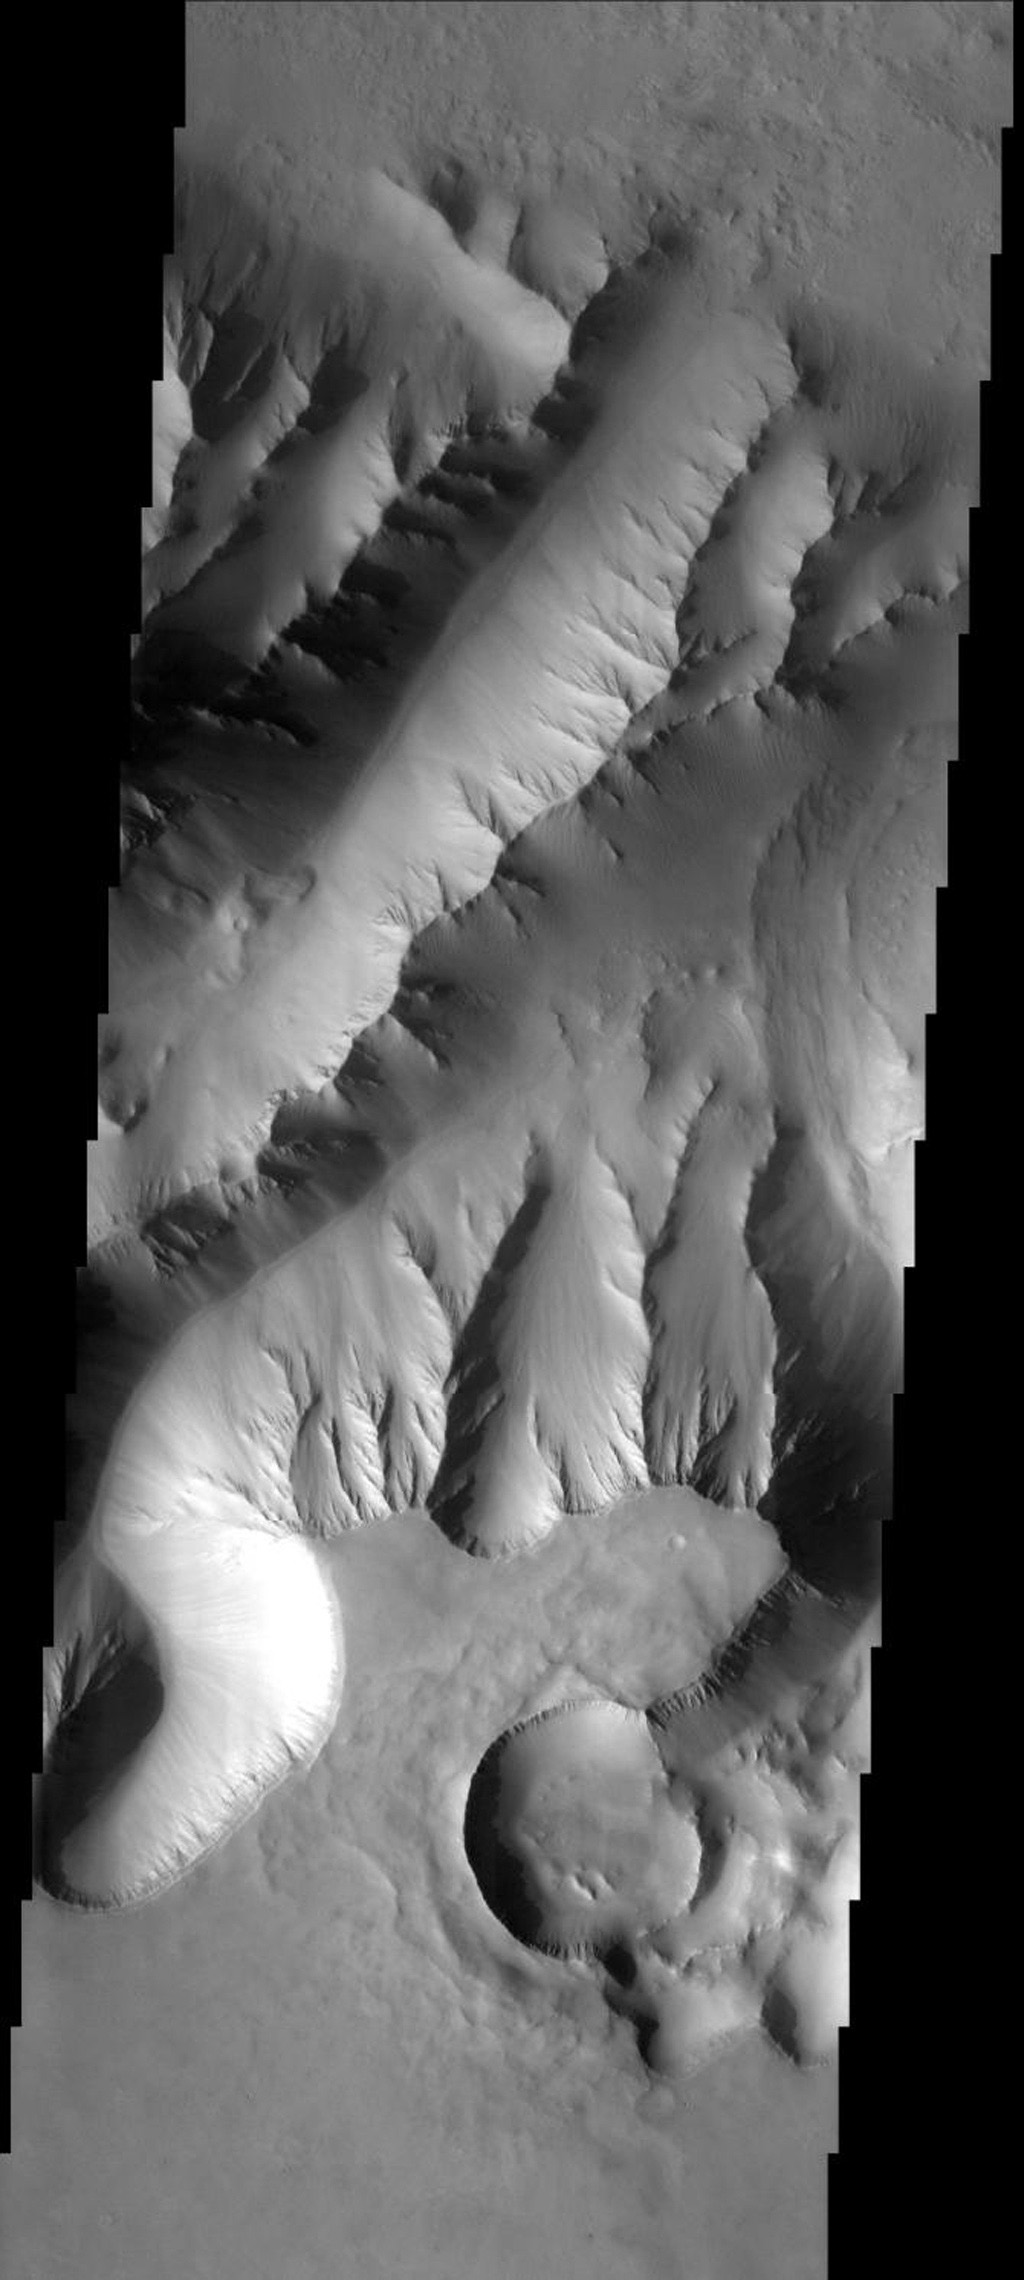 Using the JMars targeting software, eighth grade students from Charleston Middle School in Charleston, IL, selected the location of -8.37N and 276.66E for capture by NASA's 2001 Mars Odyssey spacecraft in its sixth orbit of Mars on Nov. 22, 2005.